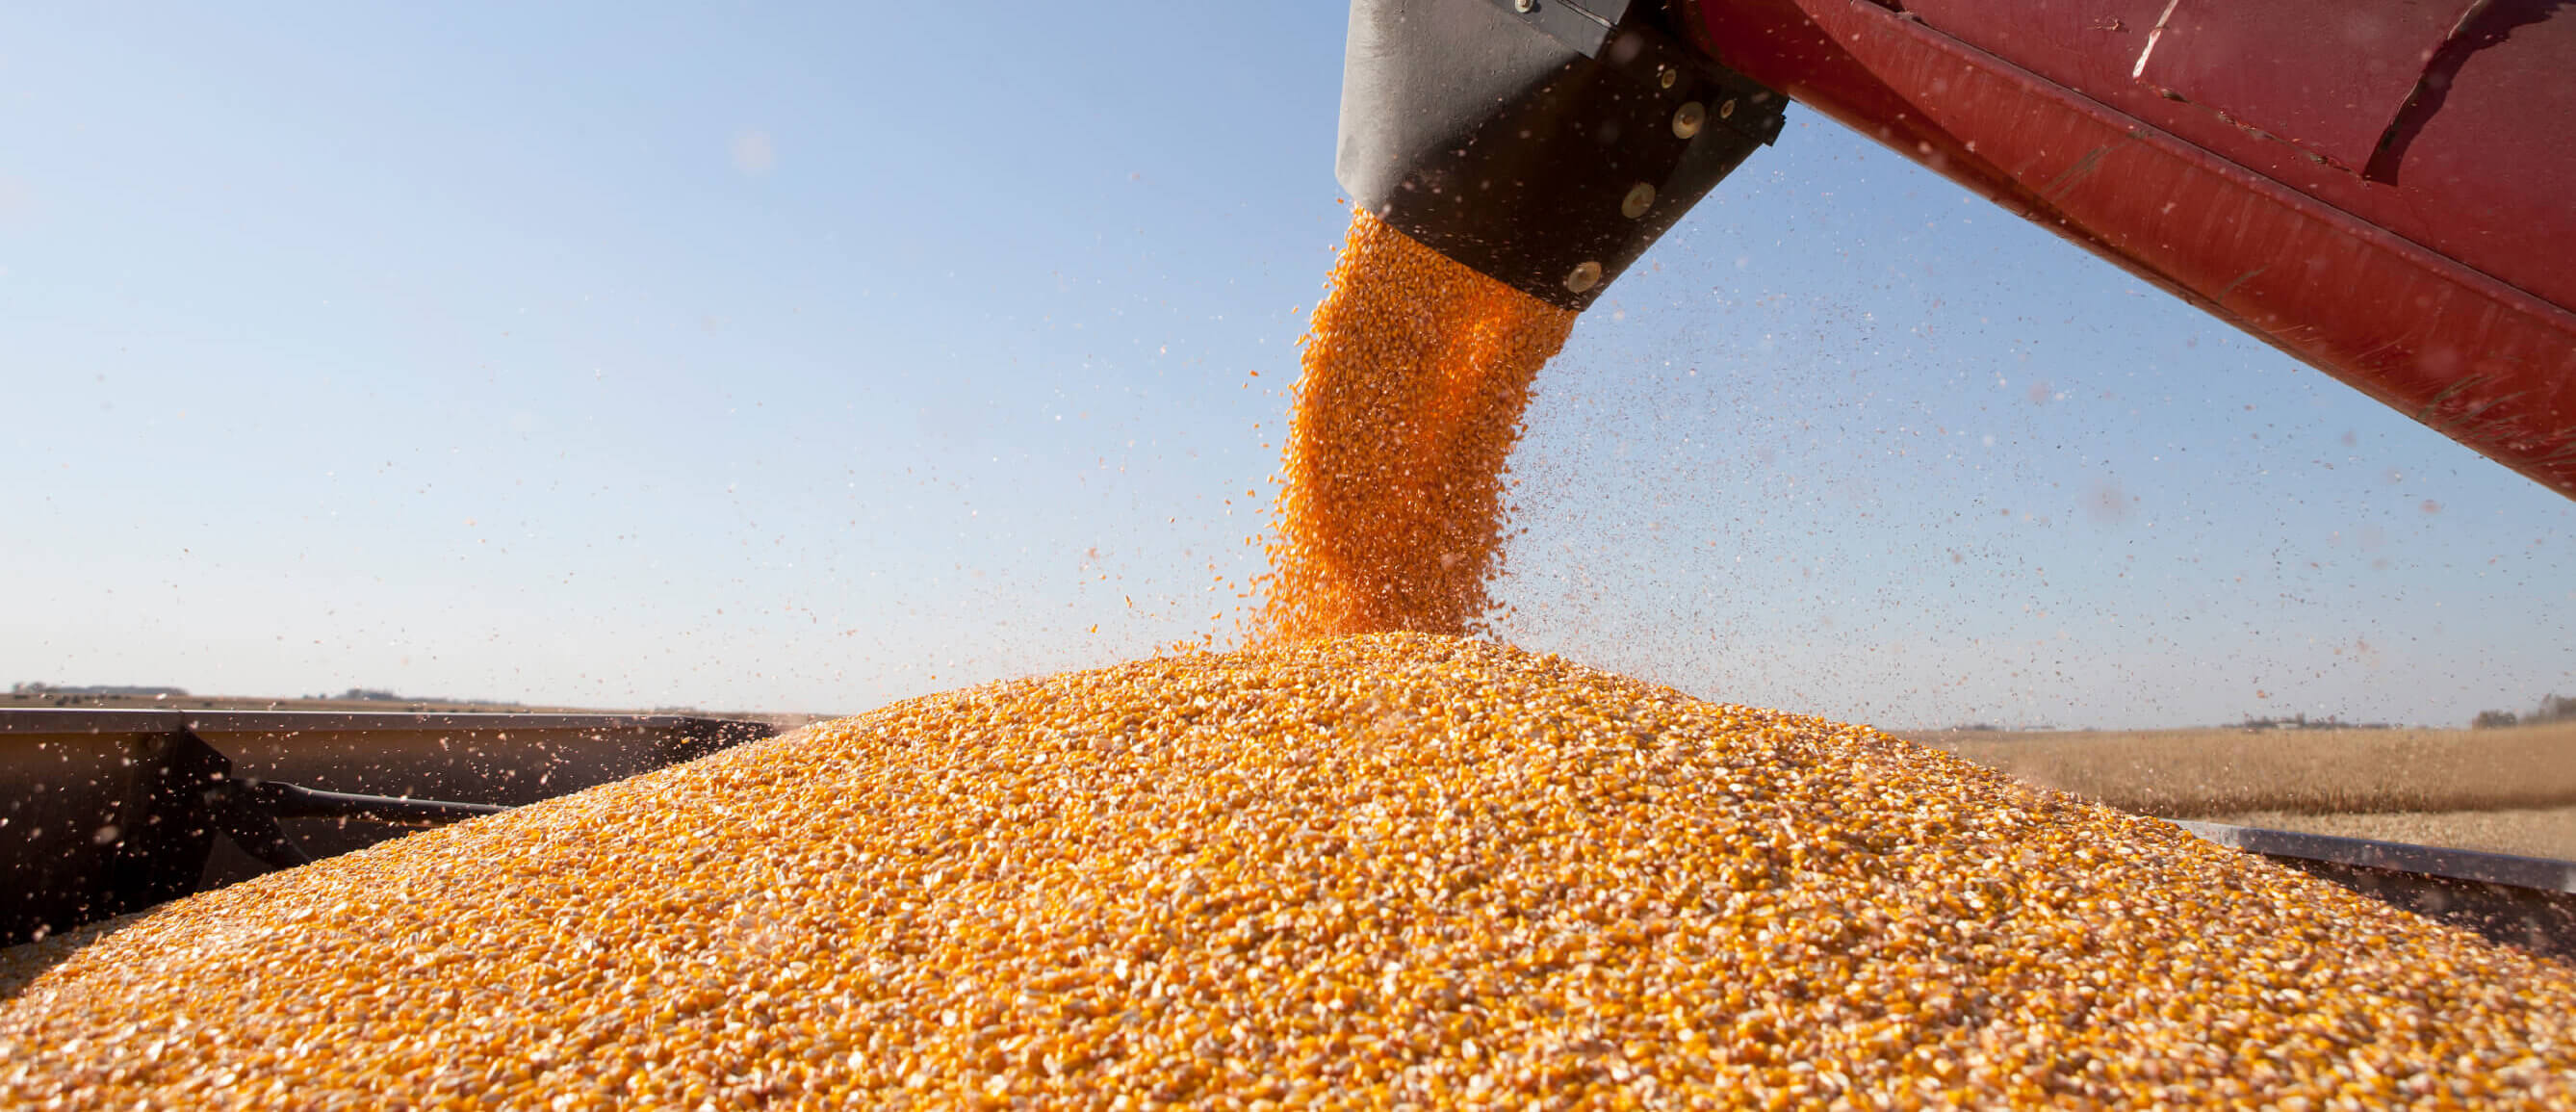 Yellow pieces of corn come out of a black and red machine onto a large pile of corn inside of a field